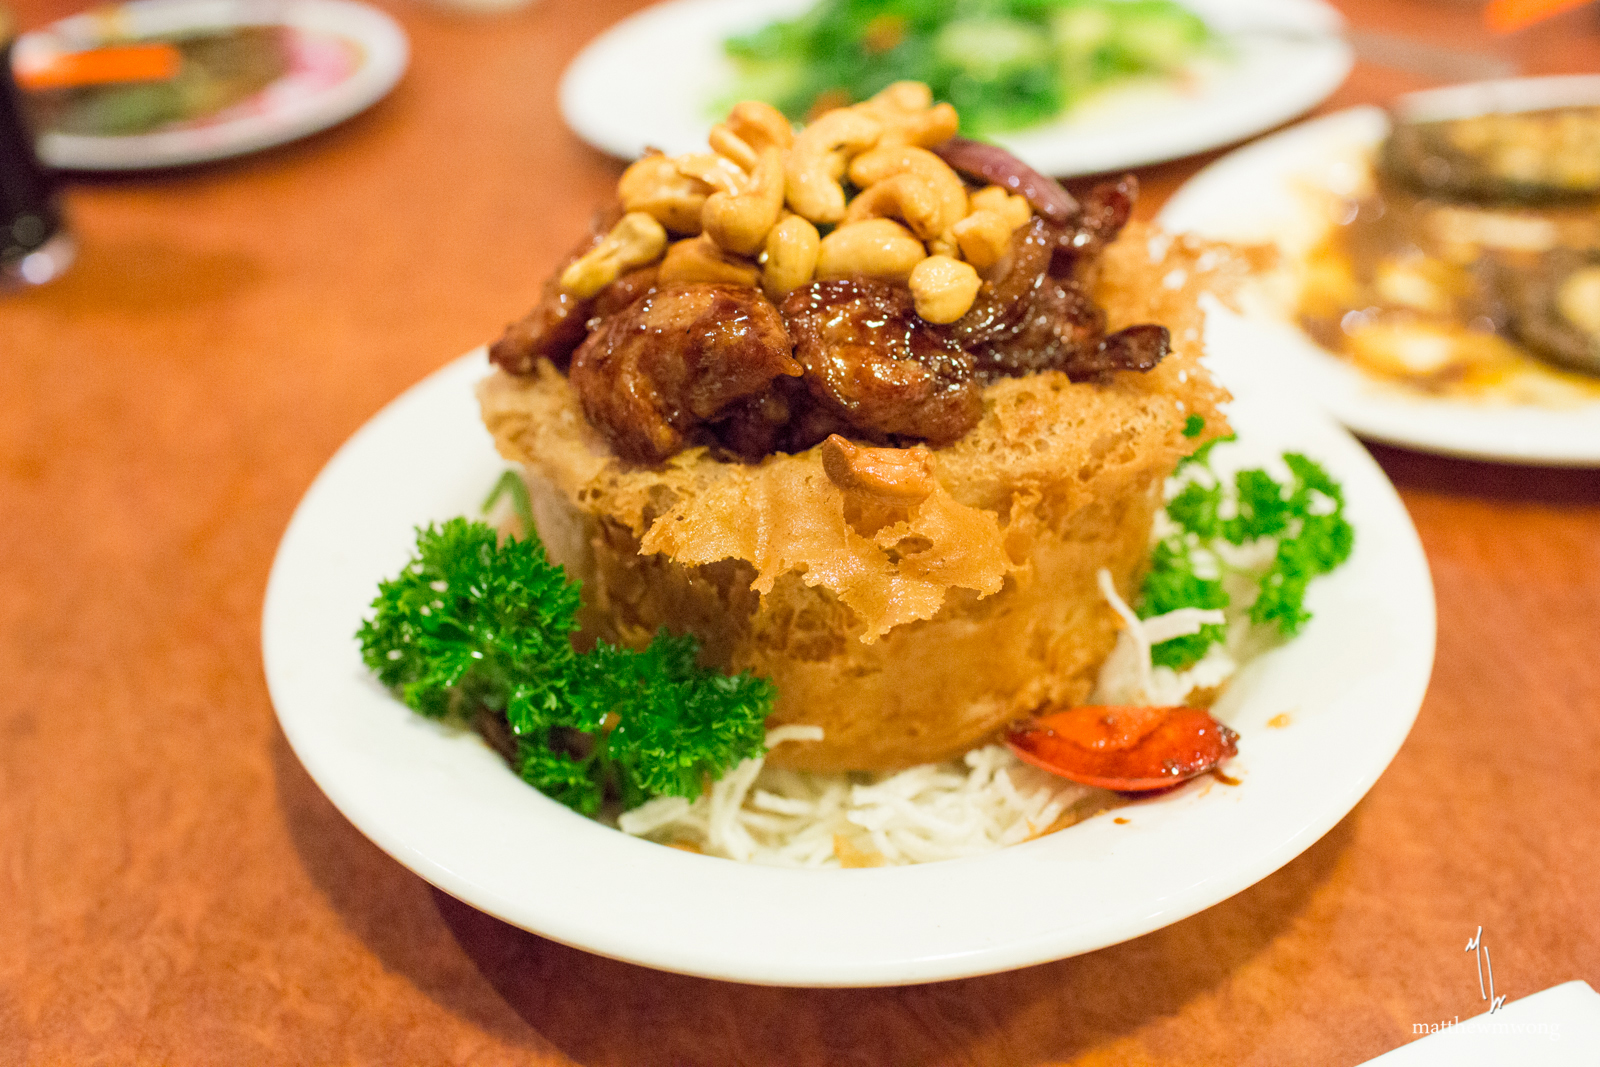 Chicken Yam Pot, Deep fried yam ring filled with stir fried chicken, vegetables, and cashew nuts